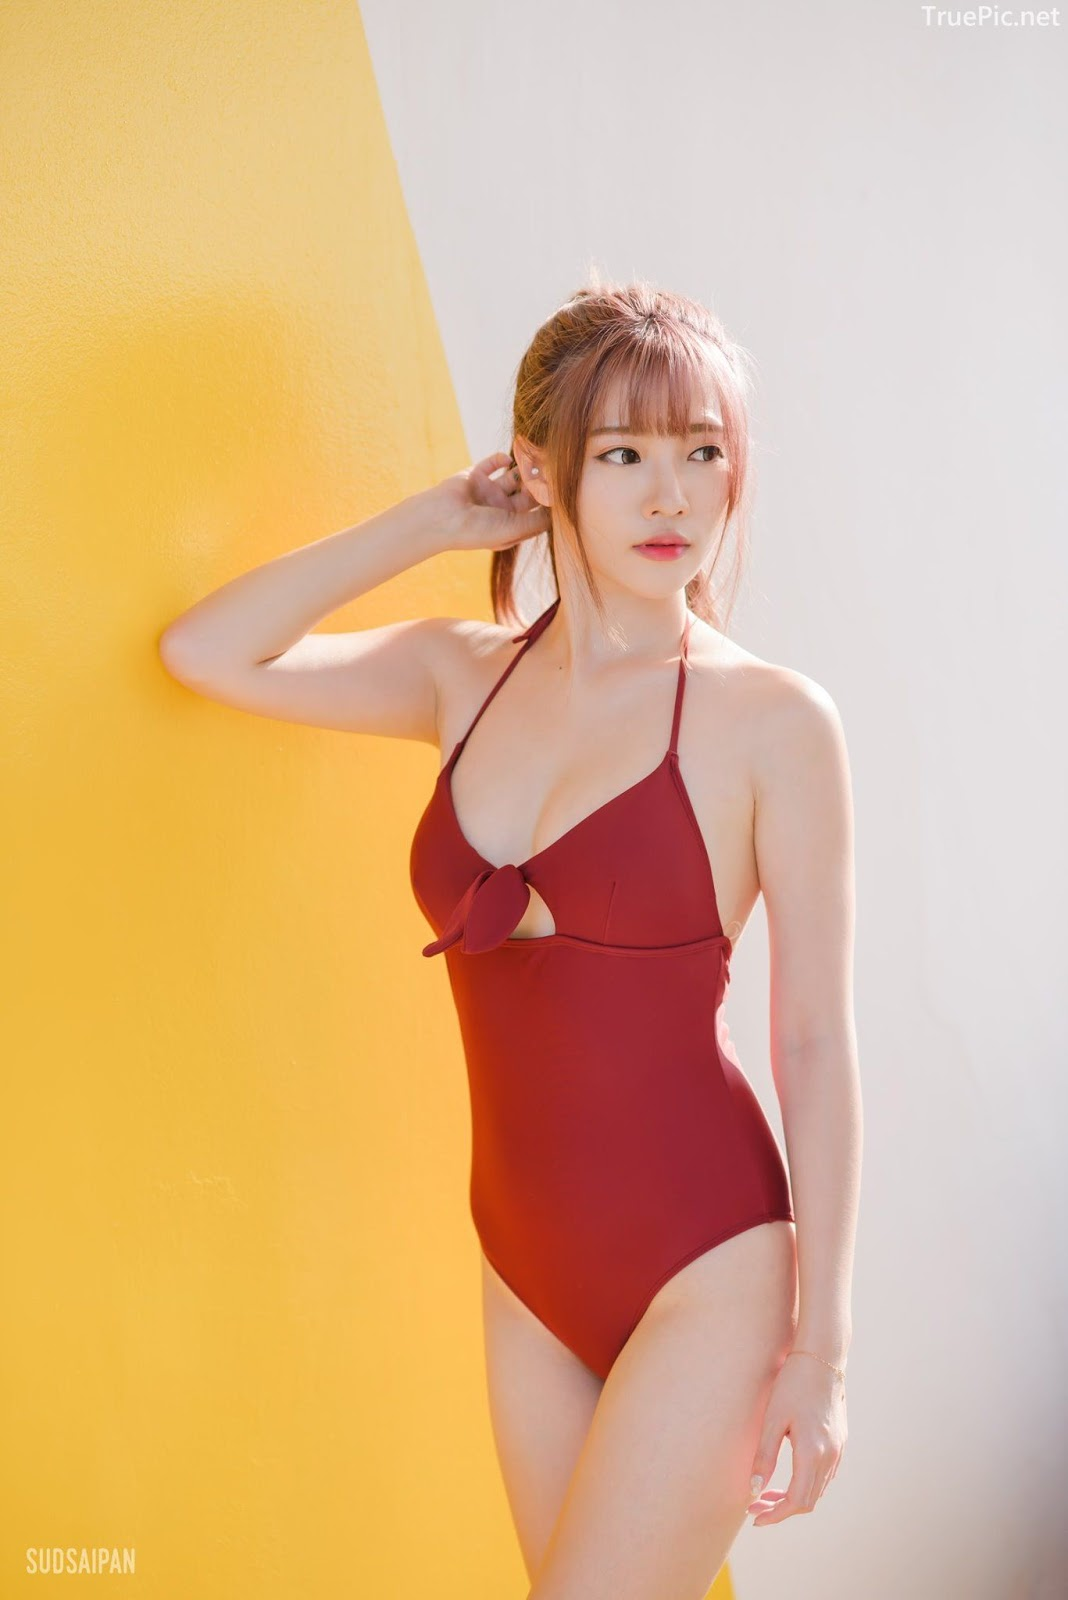 Chinese hot streaming girl - 簡欣汝 - Red Swimming Suit - TruePic.net - Picture 3